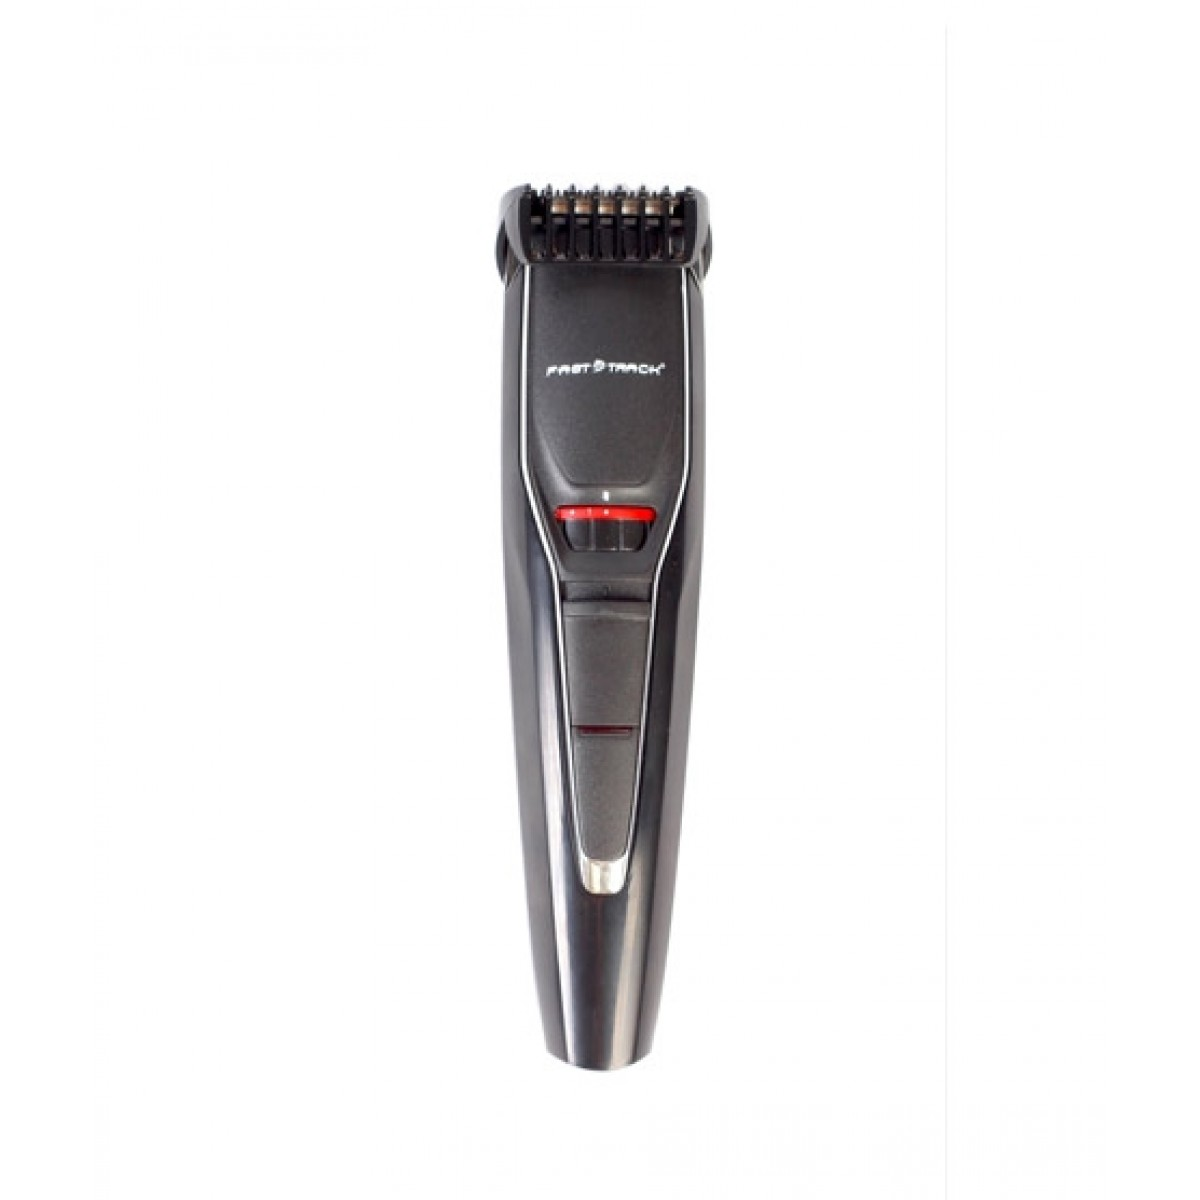 Fast Track Spike Trimmer 0.5mm Precision Dual Voltage